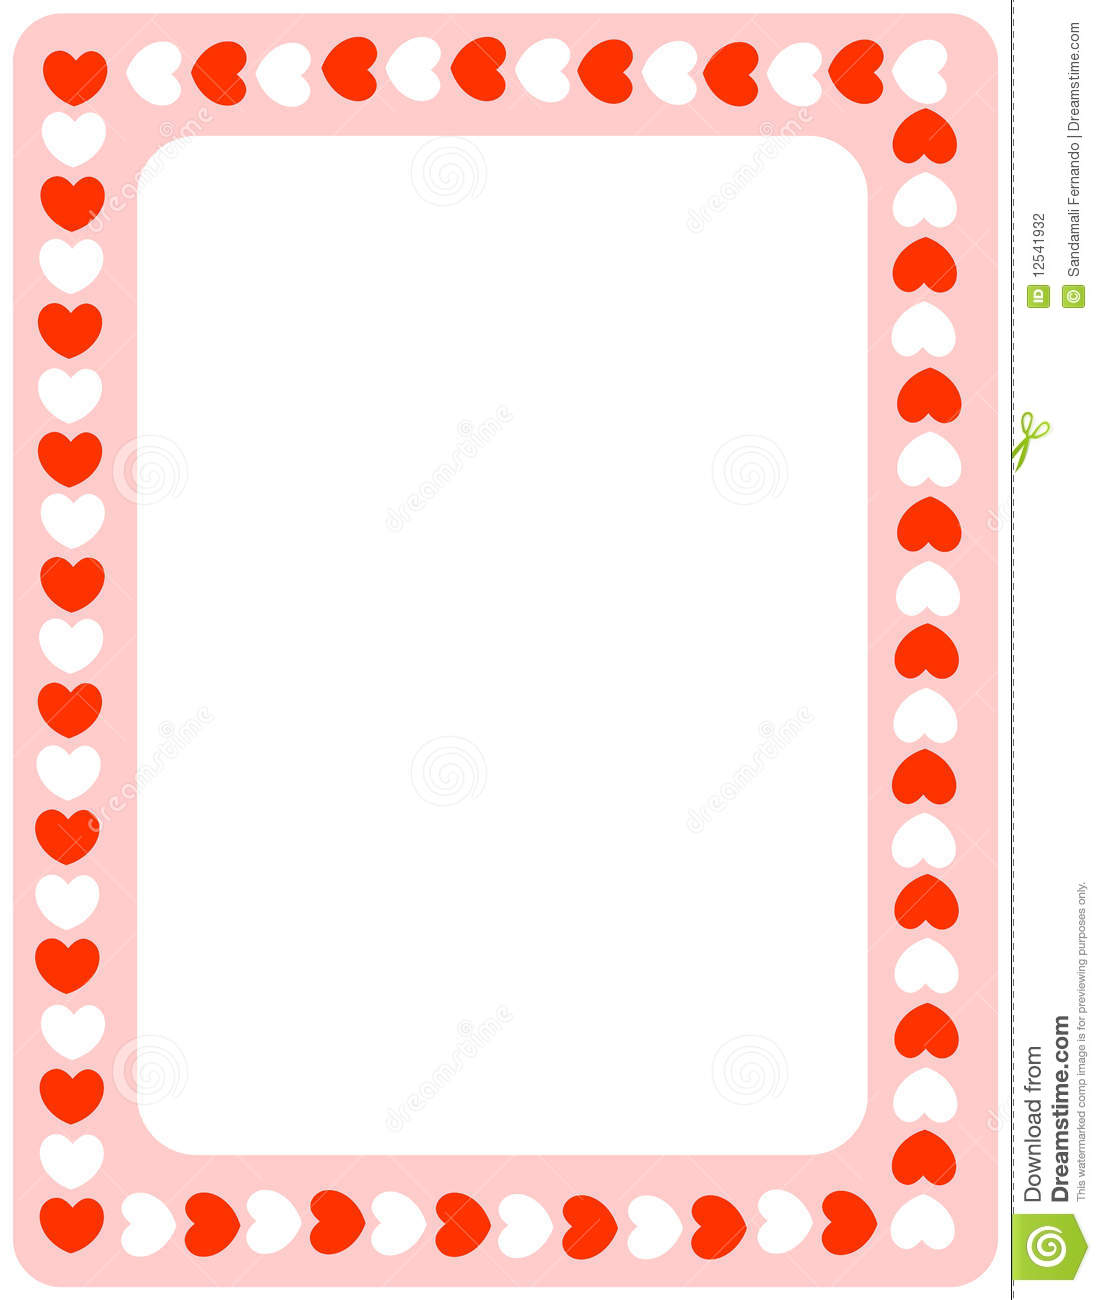 Red Hearts Valentines Day Border Stock Vector Illustration Of Card